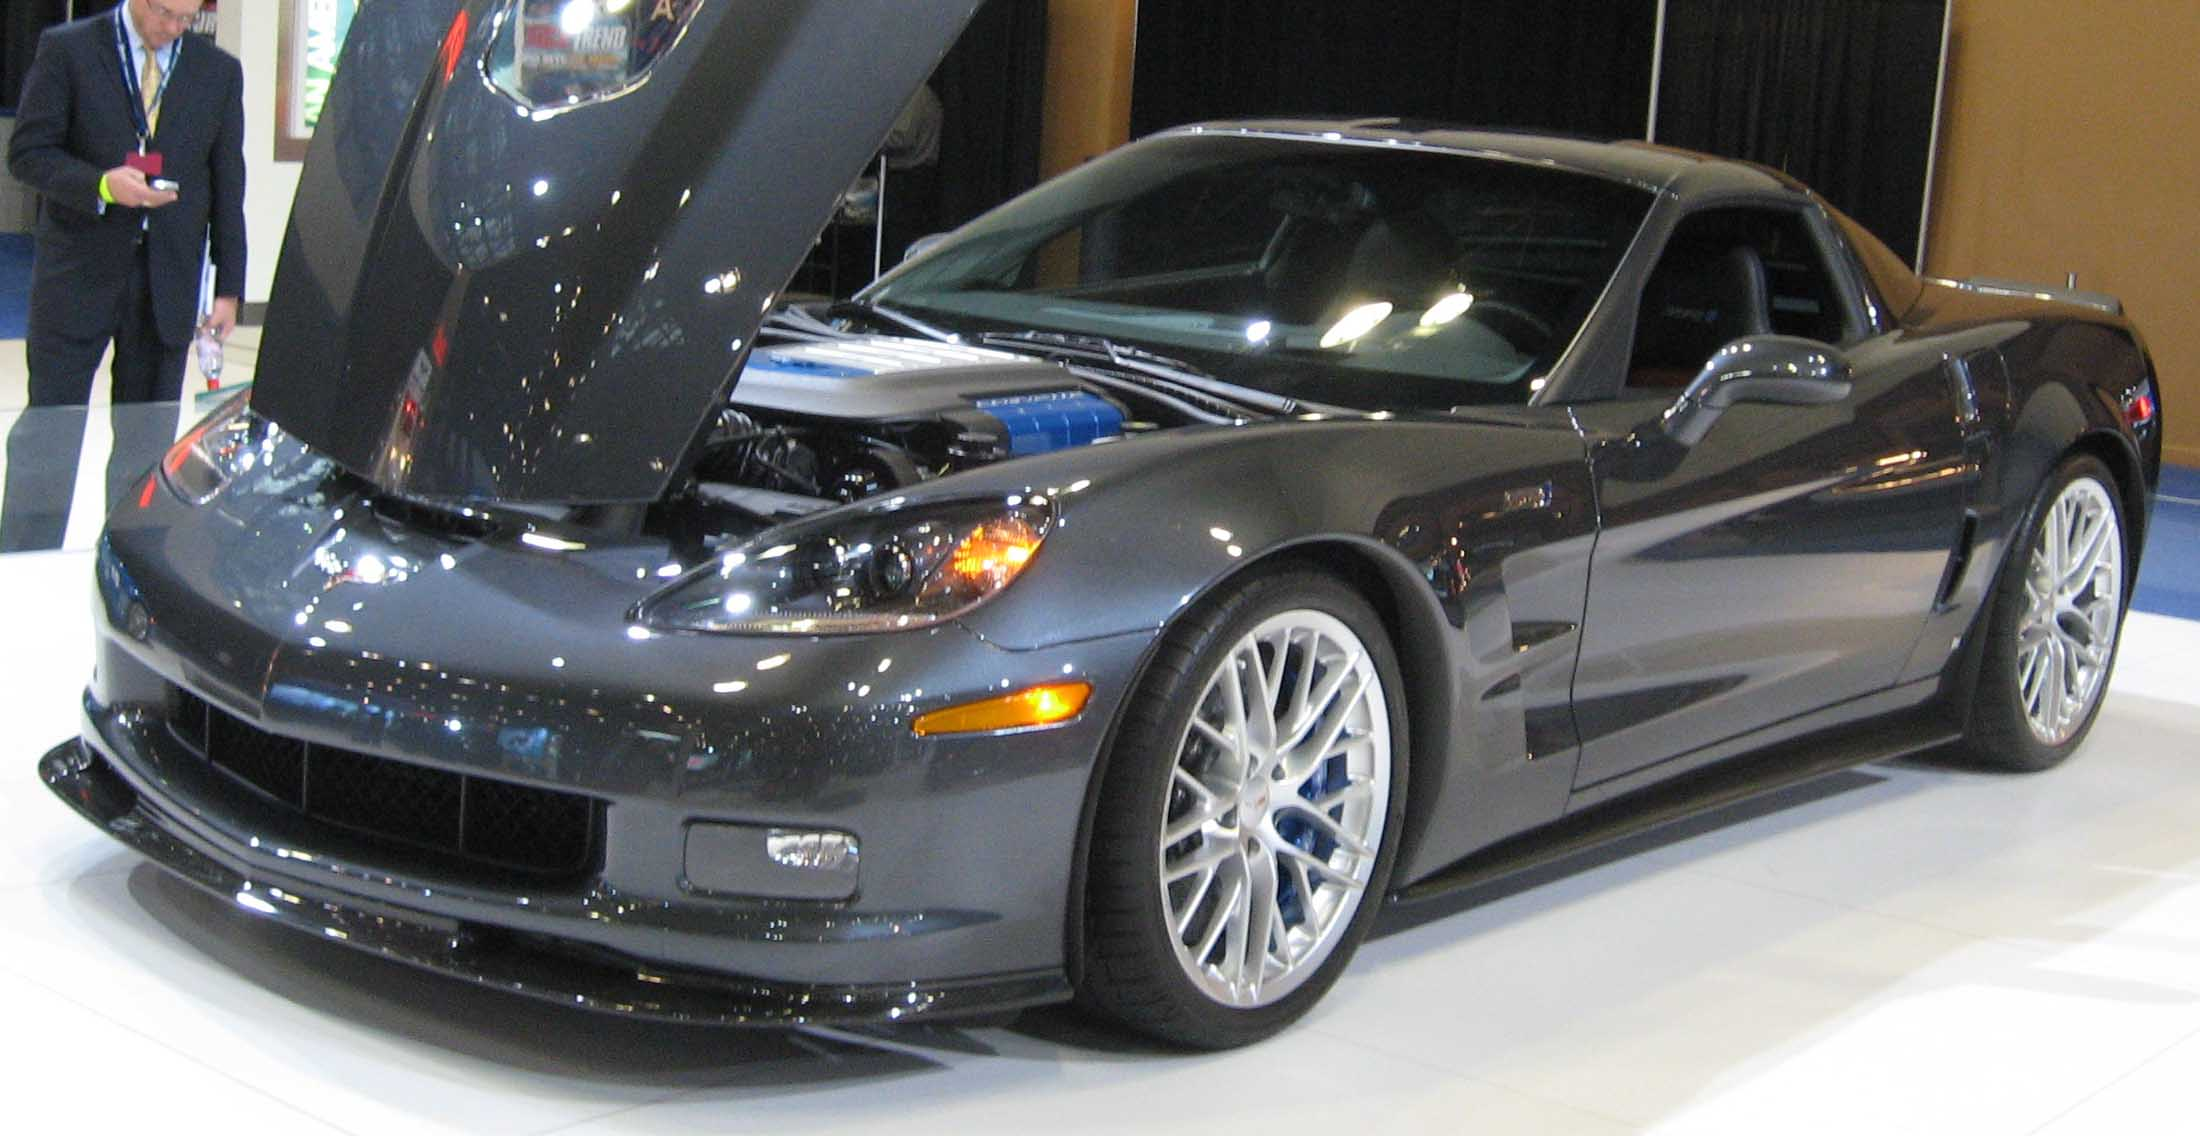 chevrolet corvette c6 convertible 2007 models